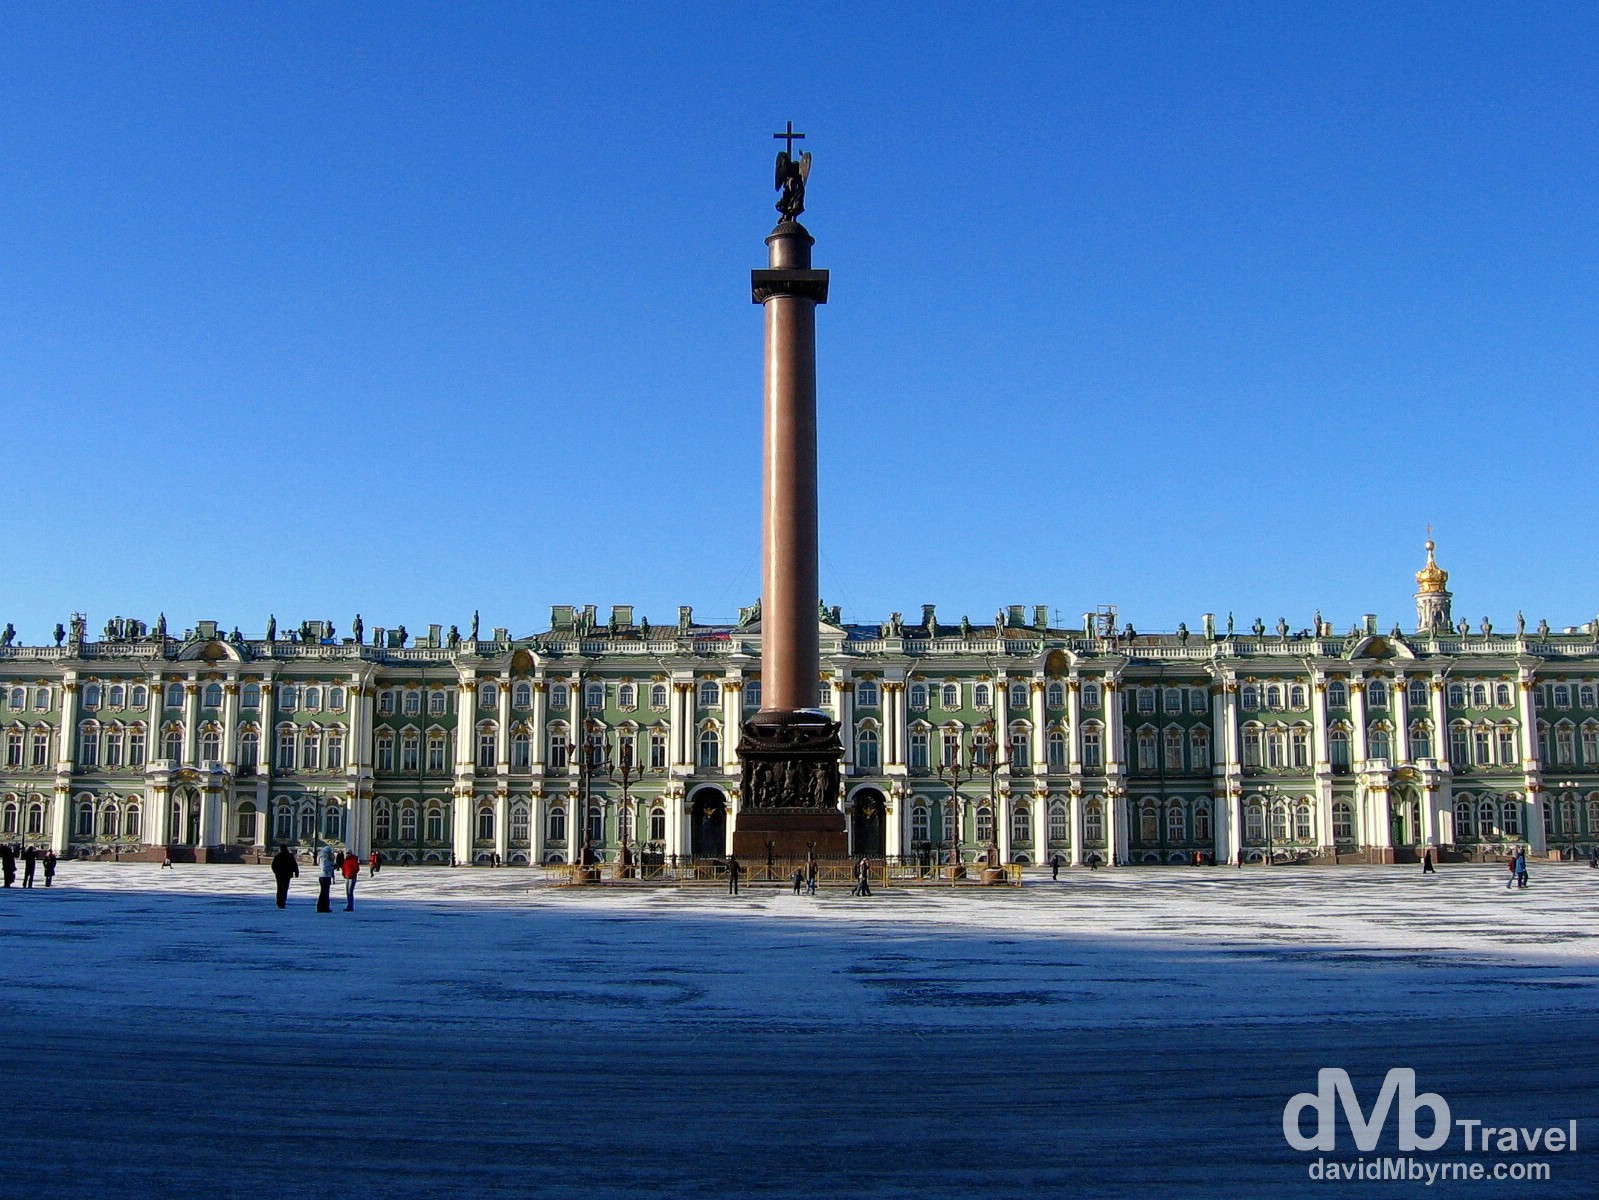 The facade of the Winter Palace & Alexander Column in as seen from Palace Square, St Petersburg, Russia. February 27, 2006.